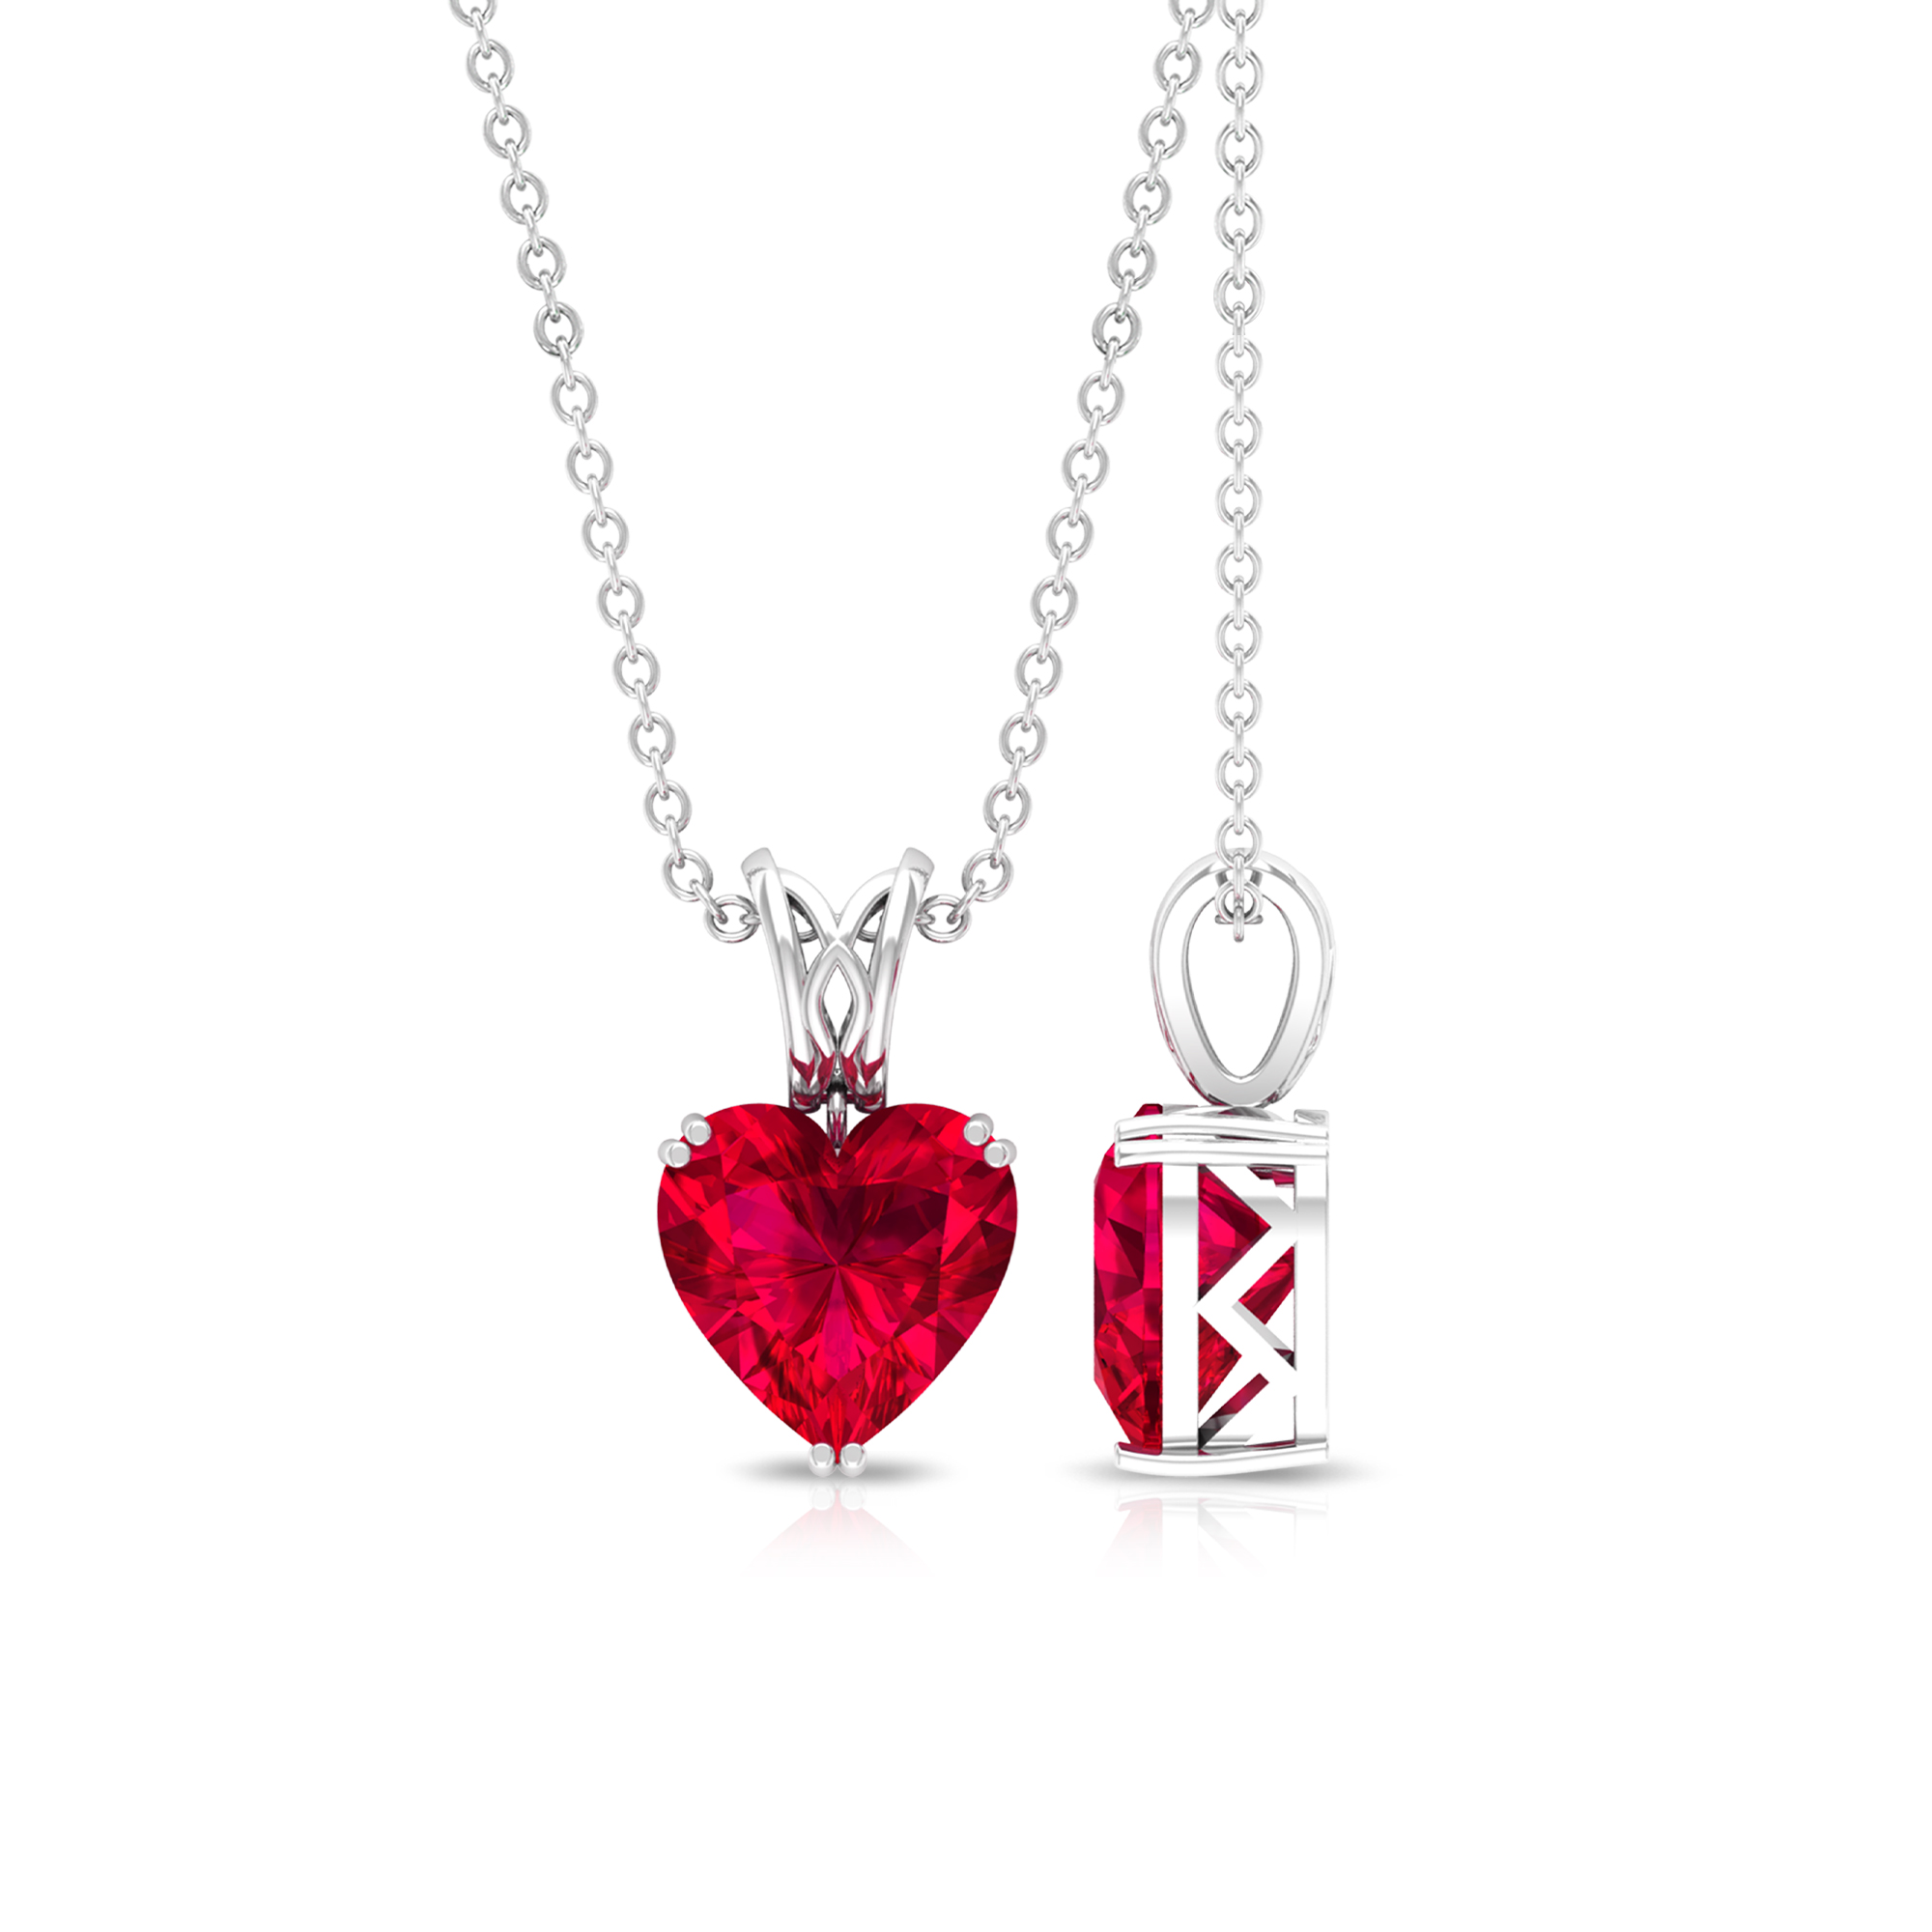 2 CT Double Prong Set Ruby Solitaire Pendant with Decorative Bail